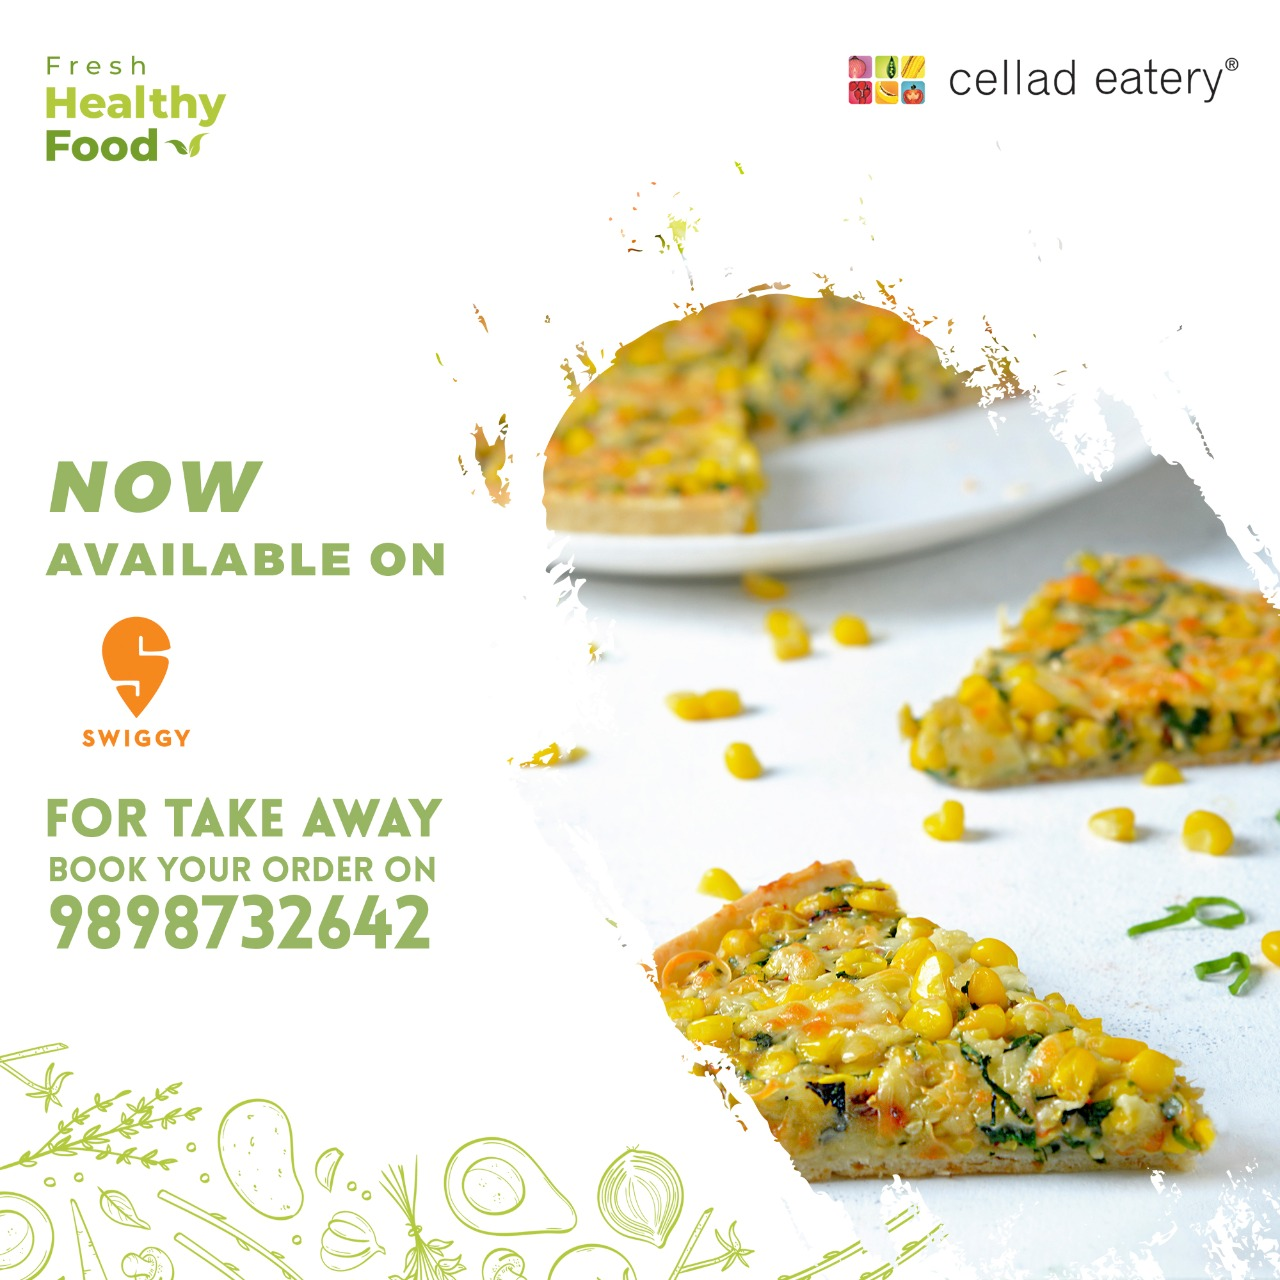 #CelladEatery is now on #Swiggy